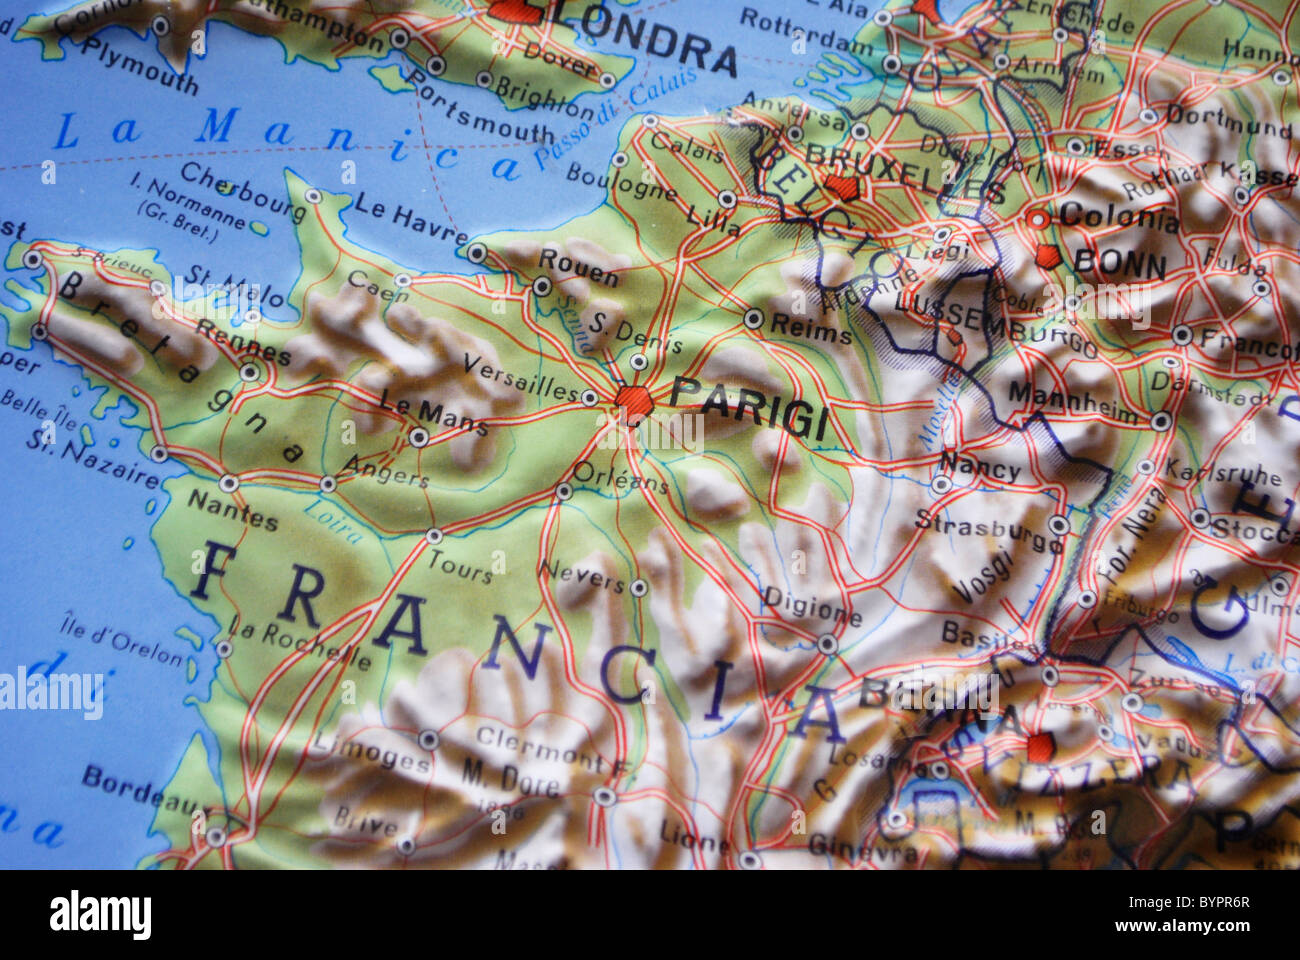 Map Of France Germany.Map In Relief Europe France Germany Italy Stock Photo 34307247 Alamy